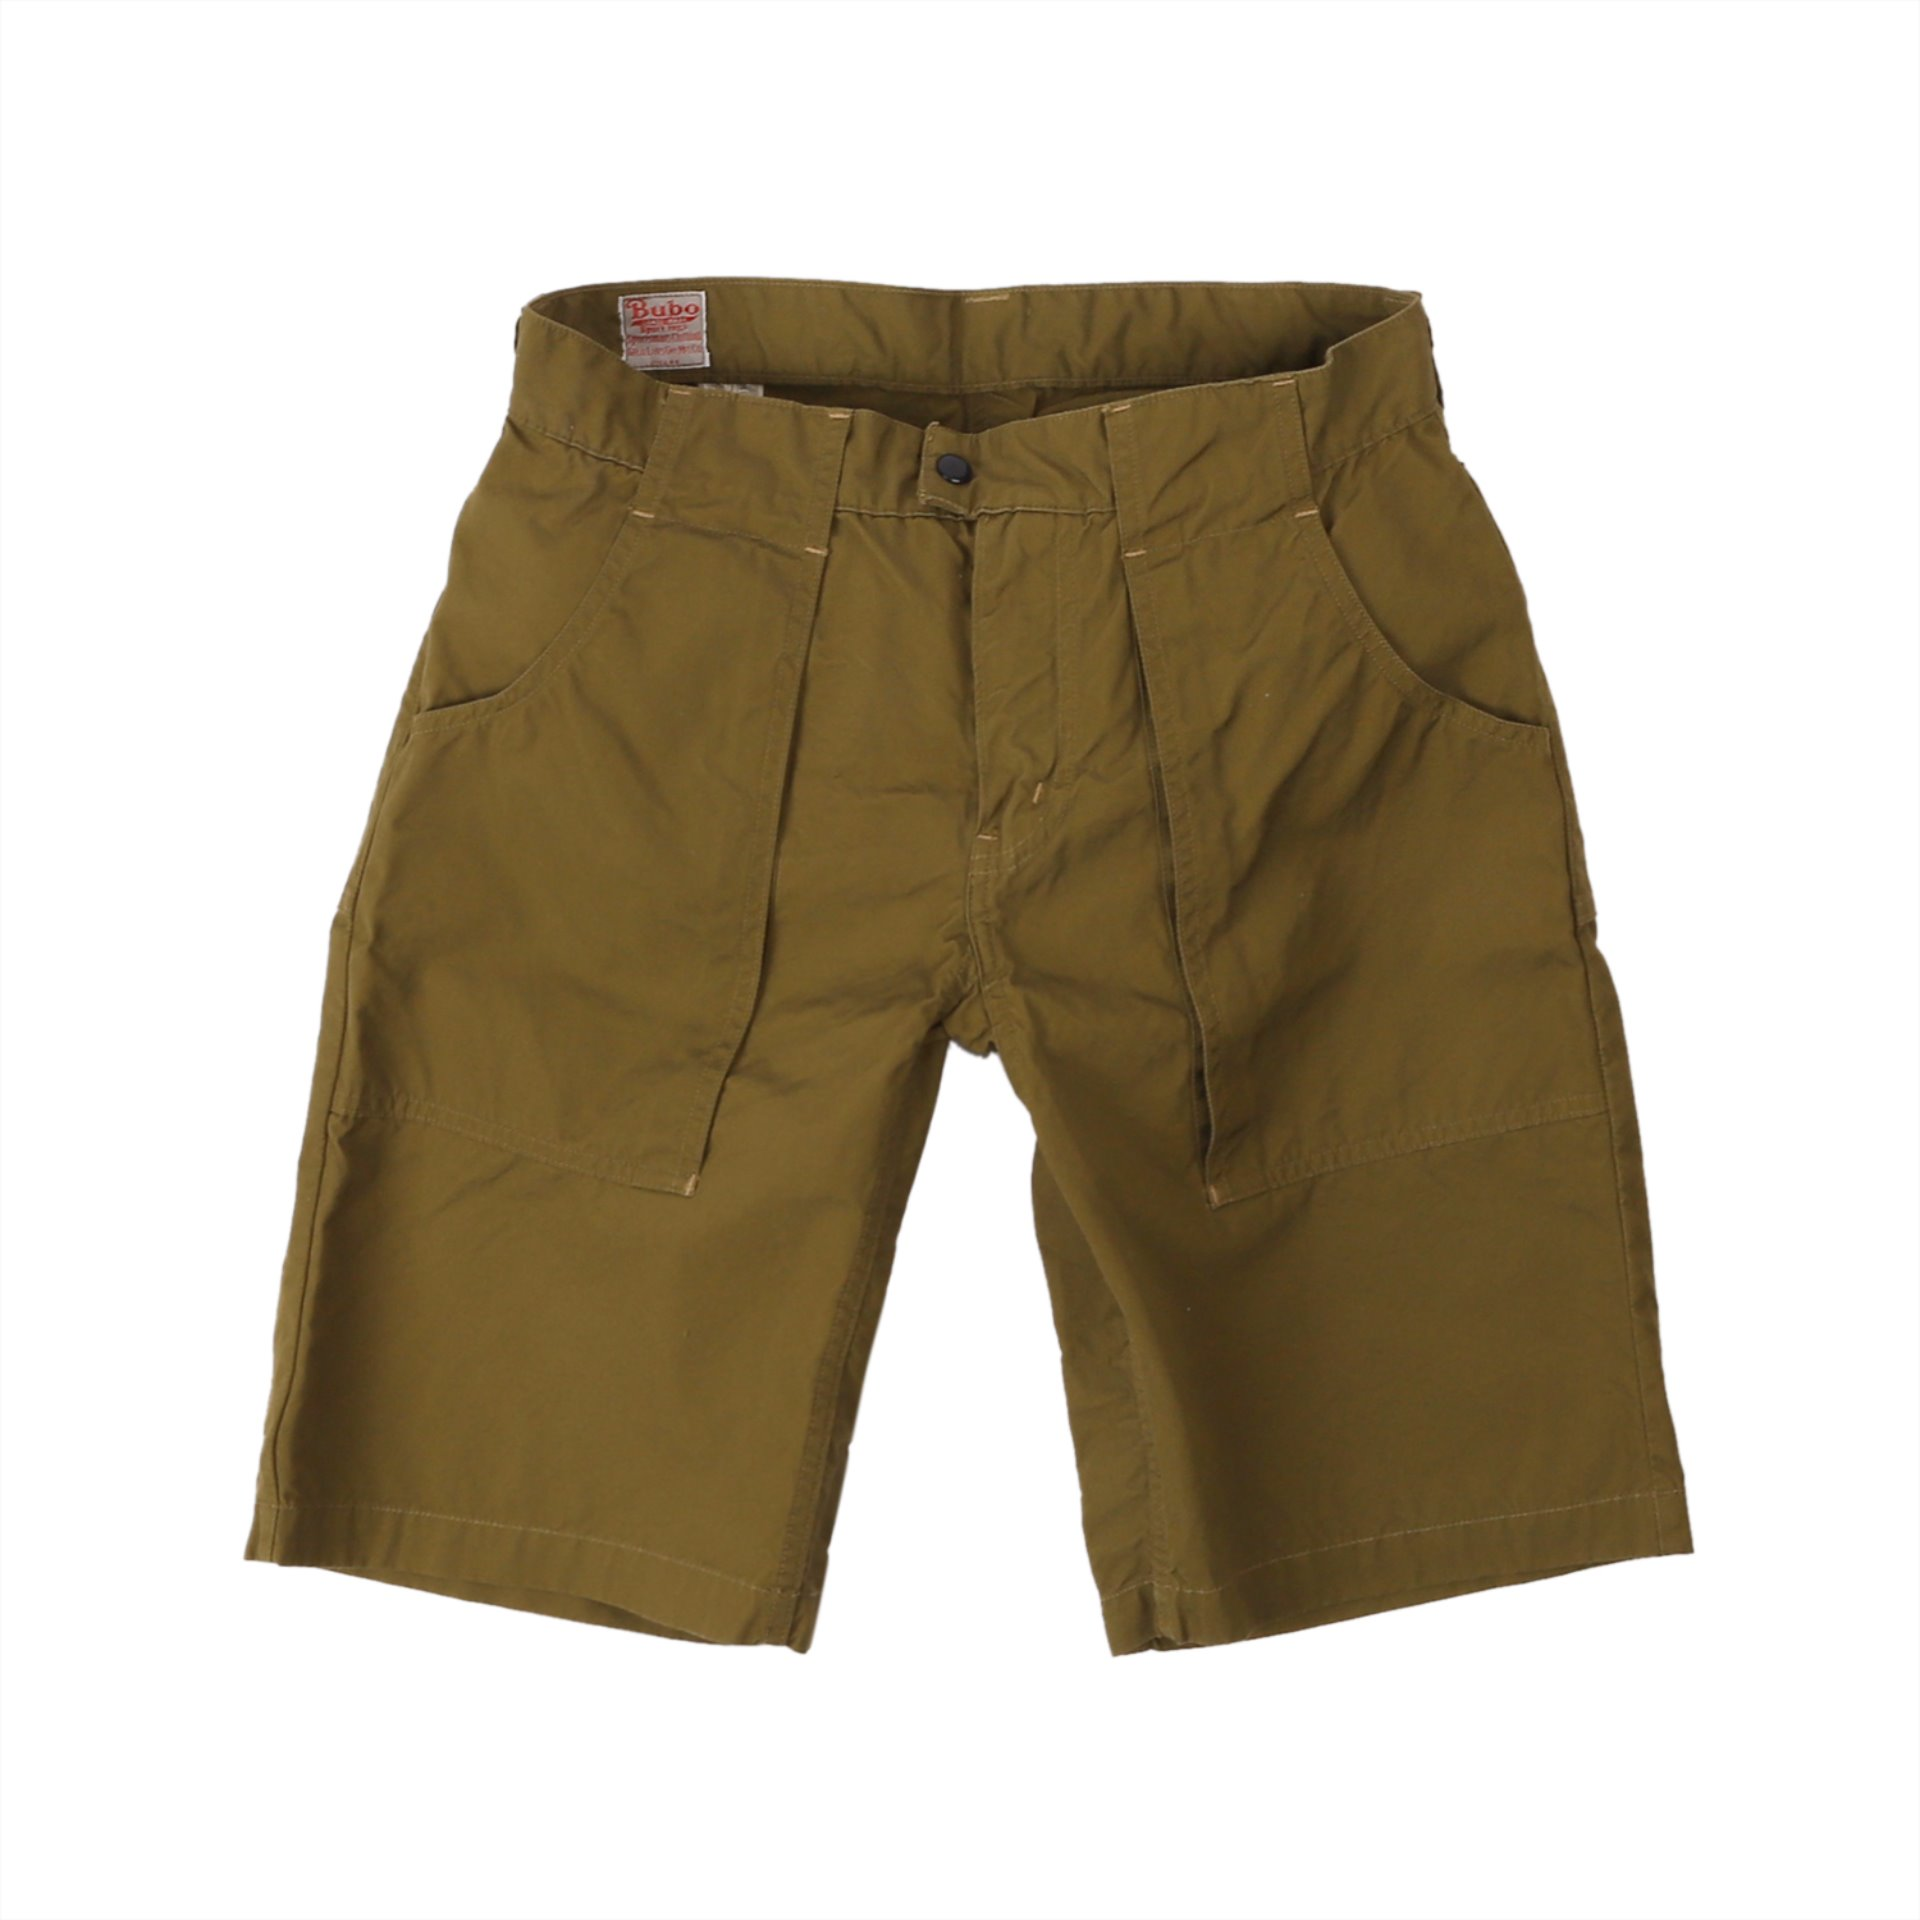 "[Great Lakes GMT. MFG. Co.]UTILITY GARMENTS""BUSH MASTER"" SHORTS (Vintage Ventile Weather Olive)"